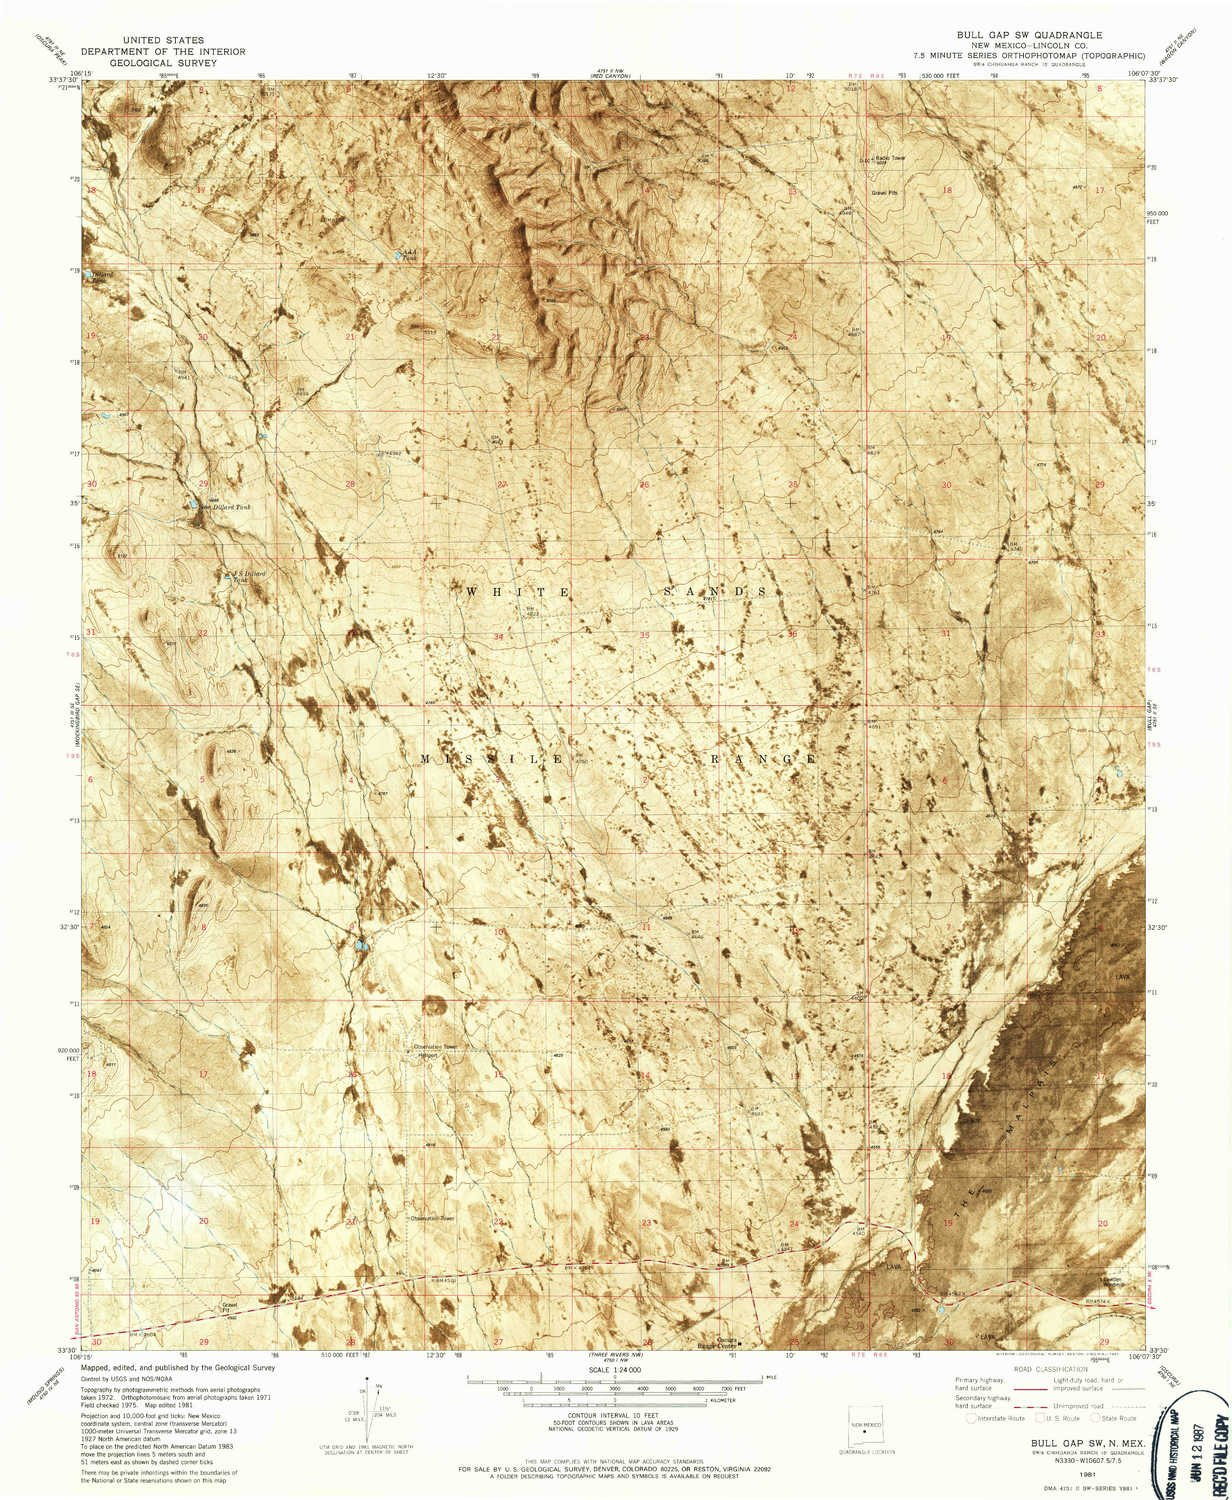 Amazon YellowMaps Bull Gap SW NM topo map 1 scale 7 5